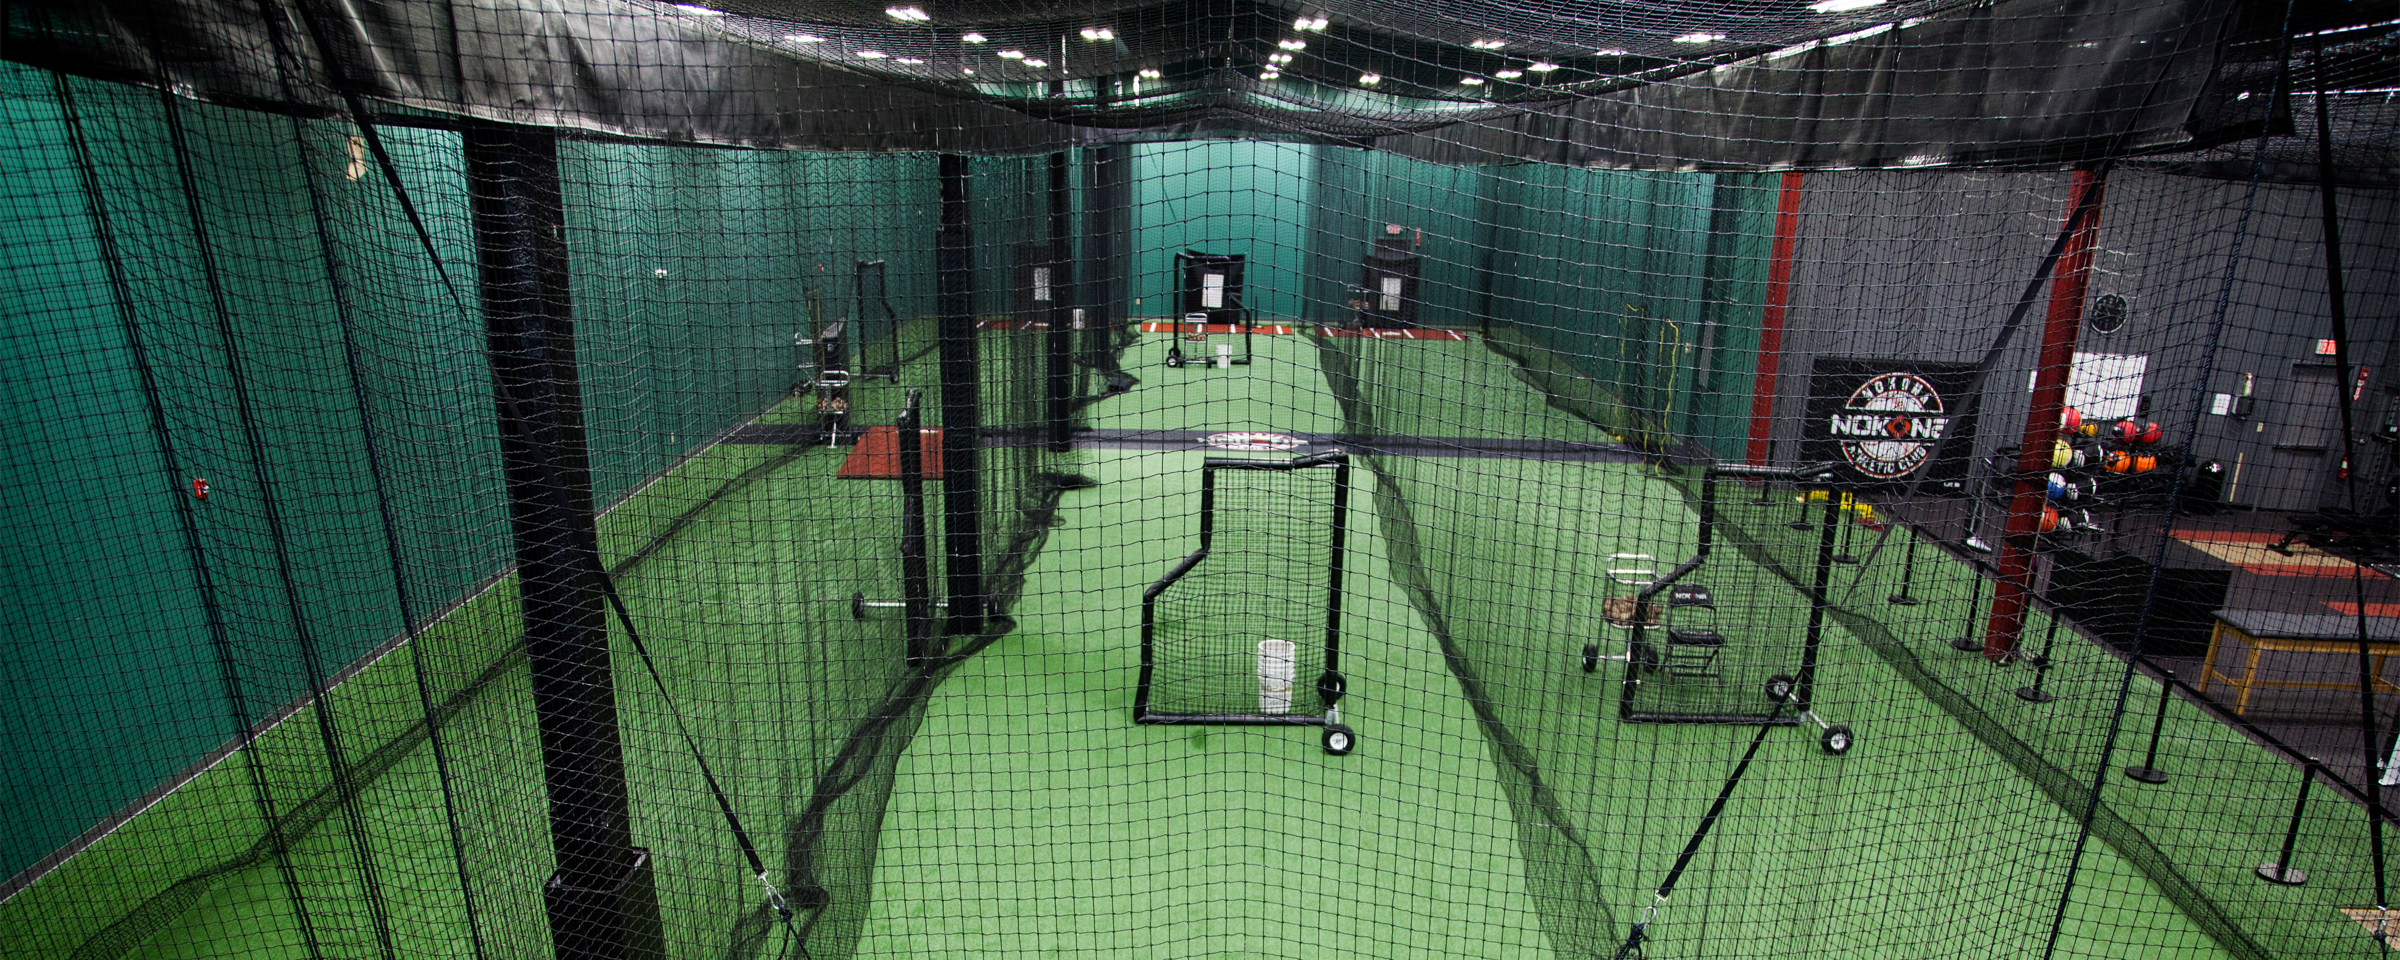 buy fixed shell batting cages for your indoor sports facility from on deck sports